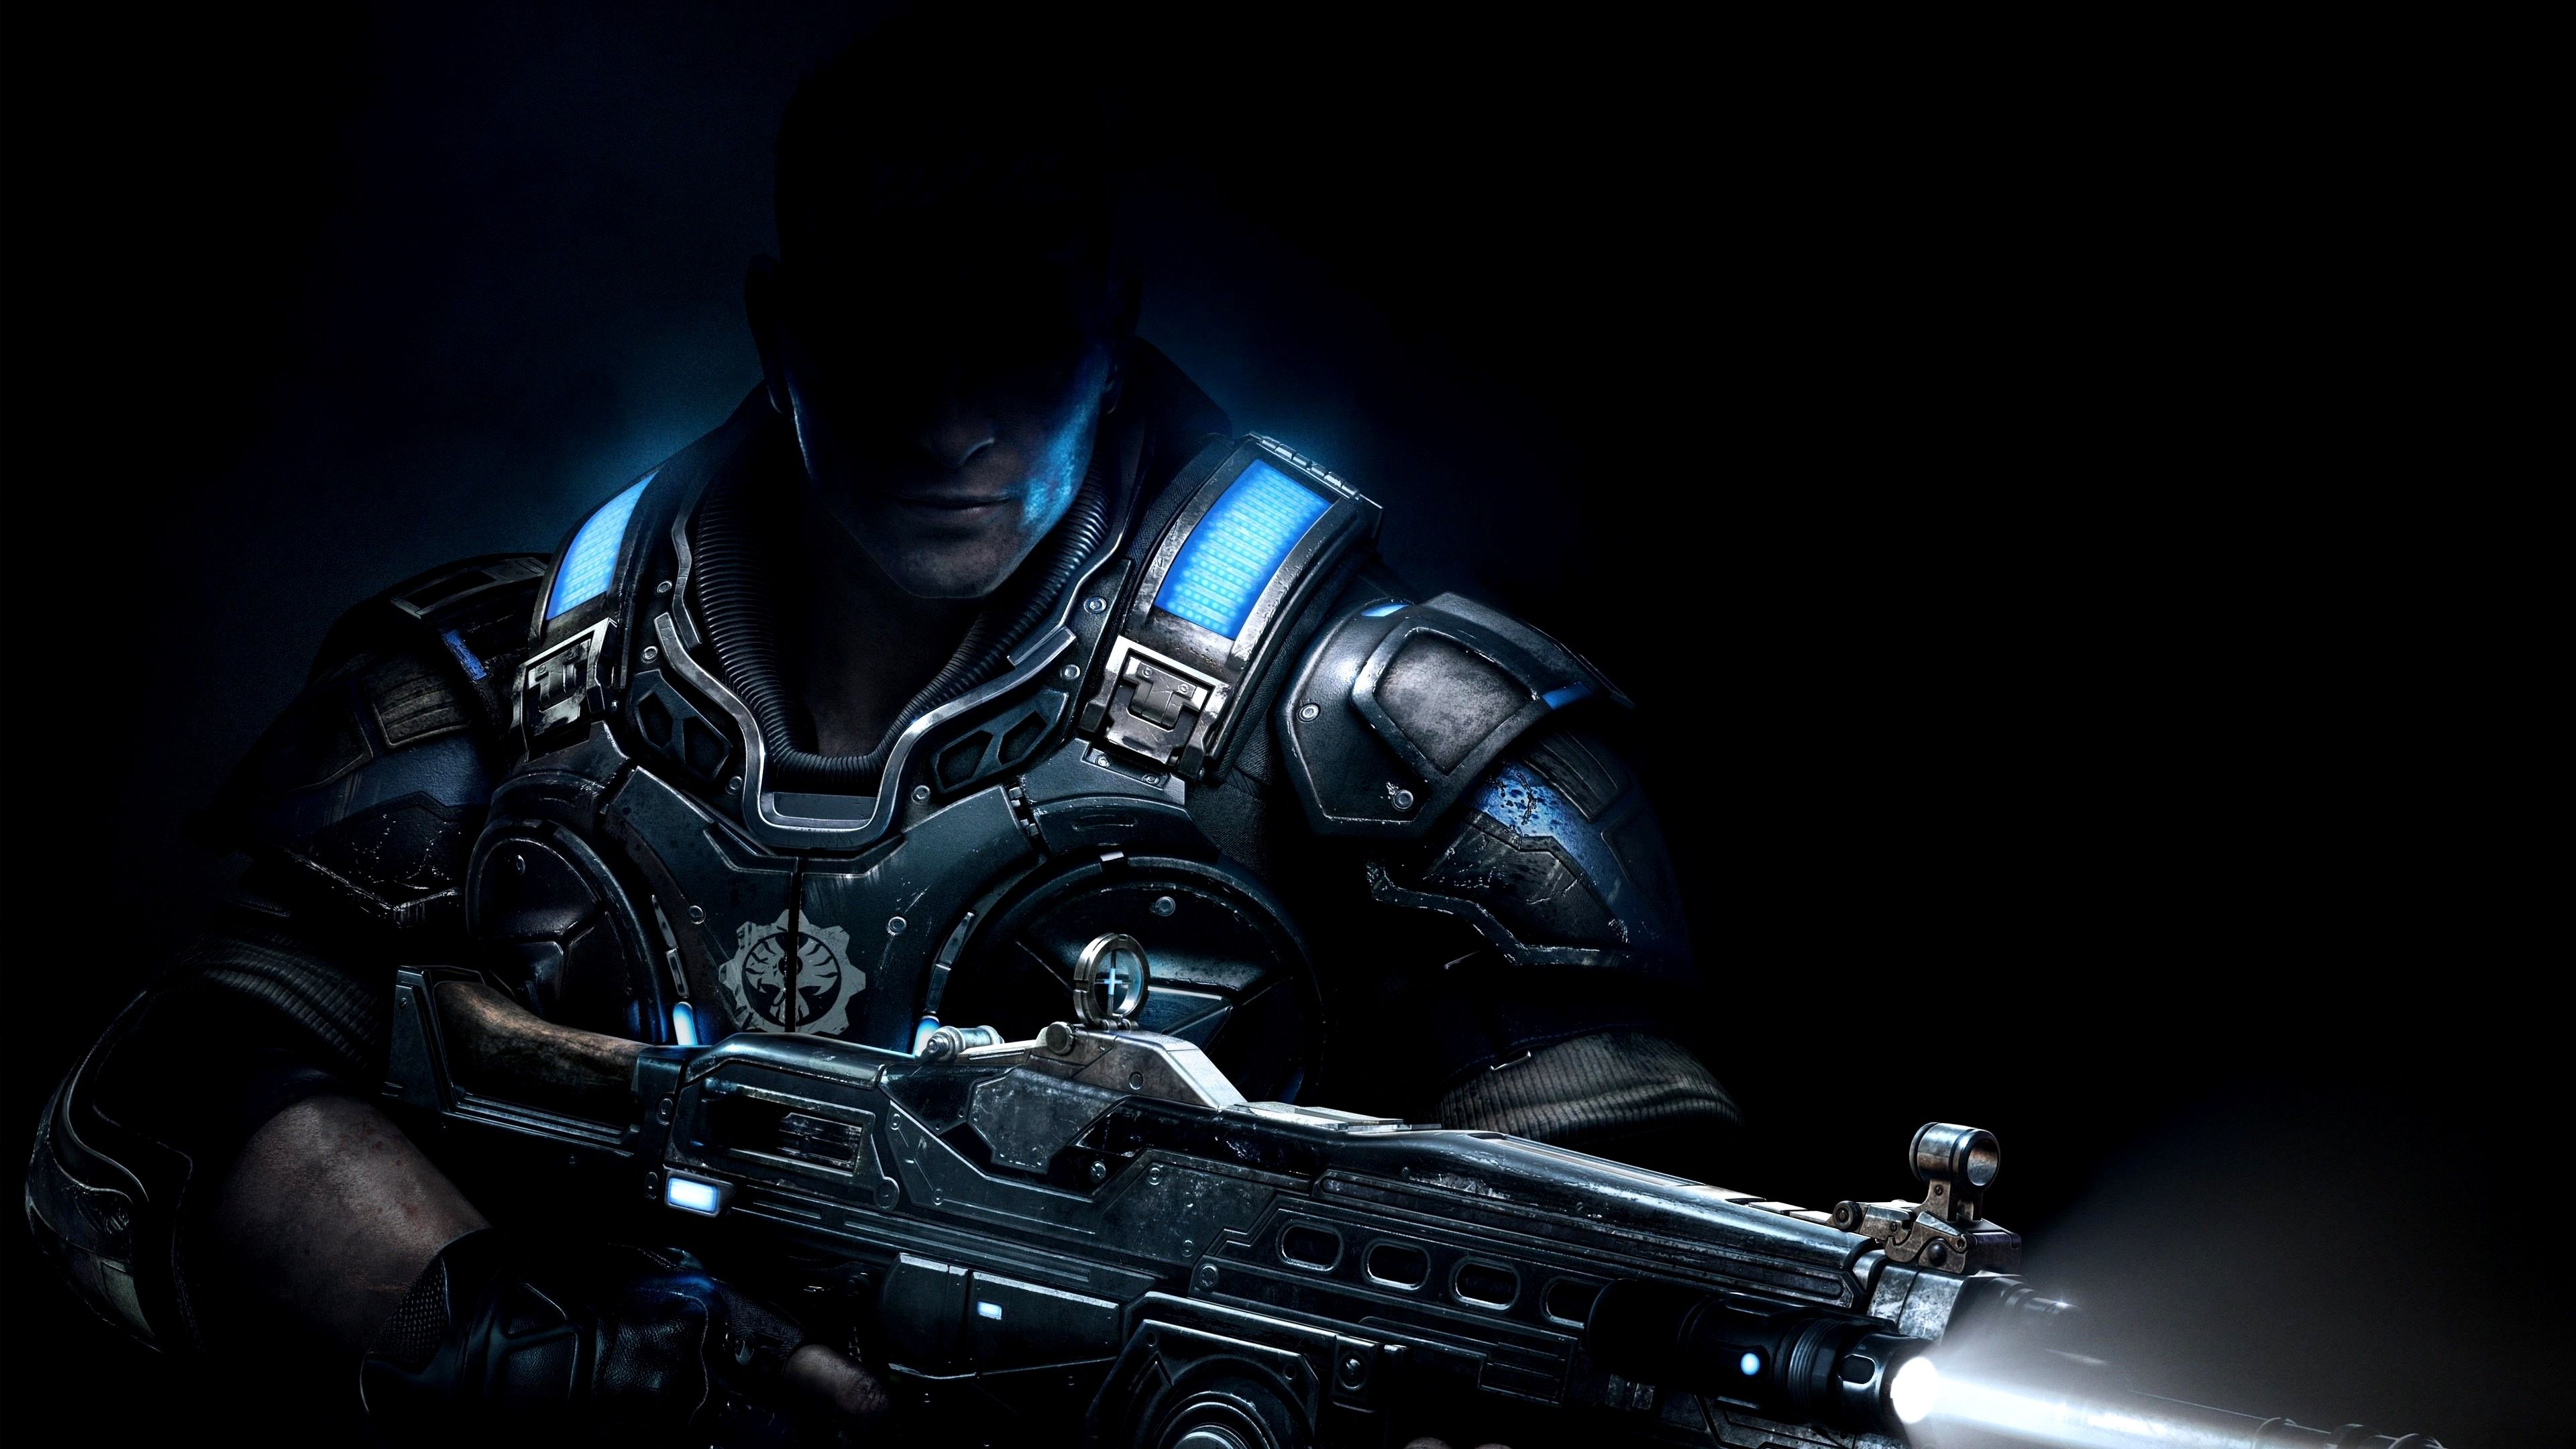 4k Wallpaper For Pc 3840x2160 Ideas Gears Of War Marvel Batman